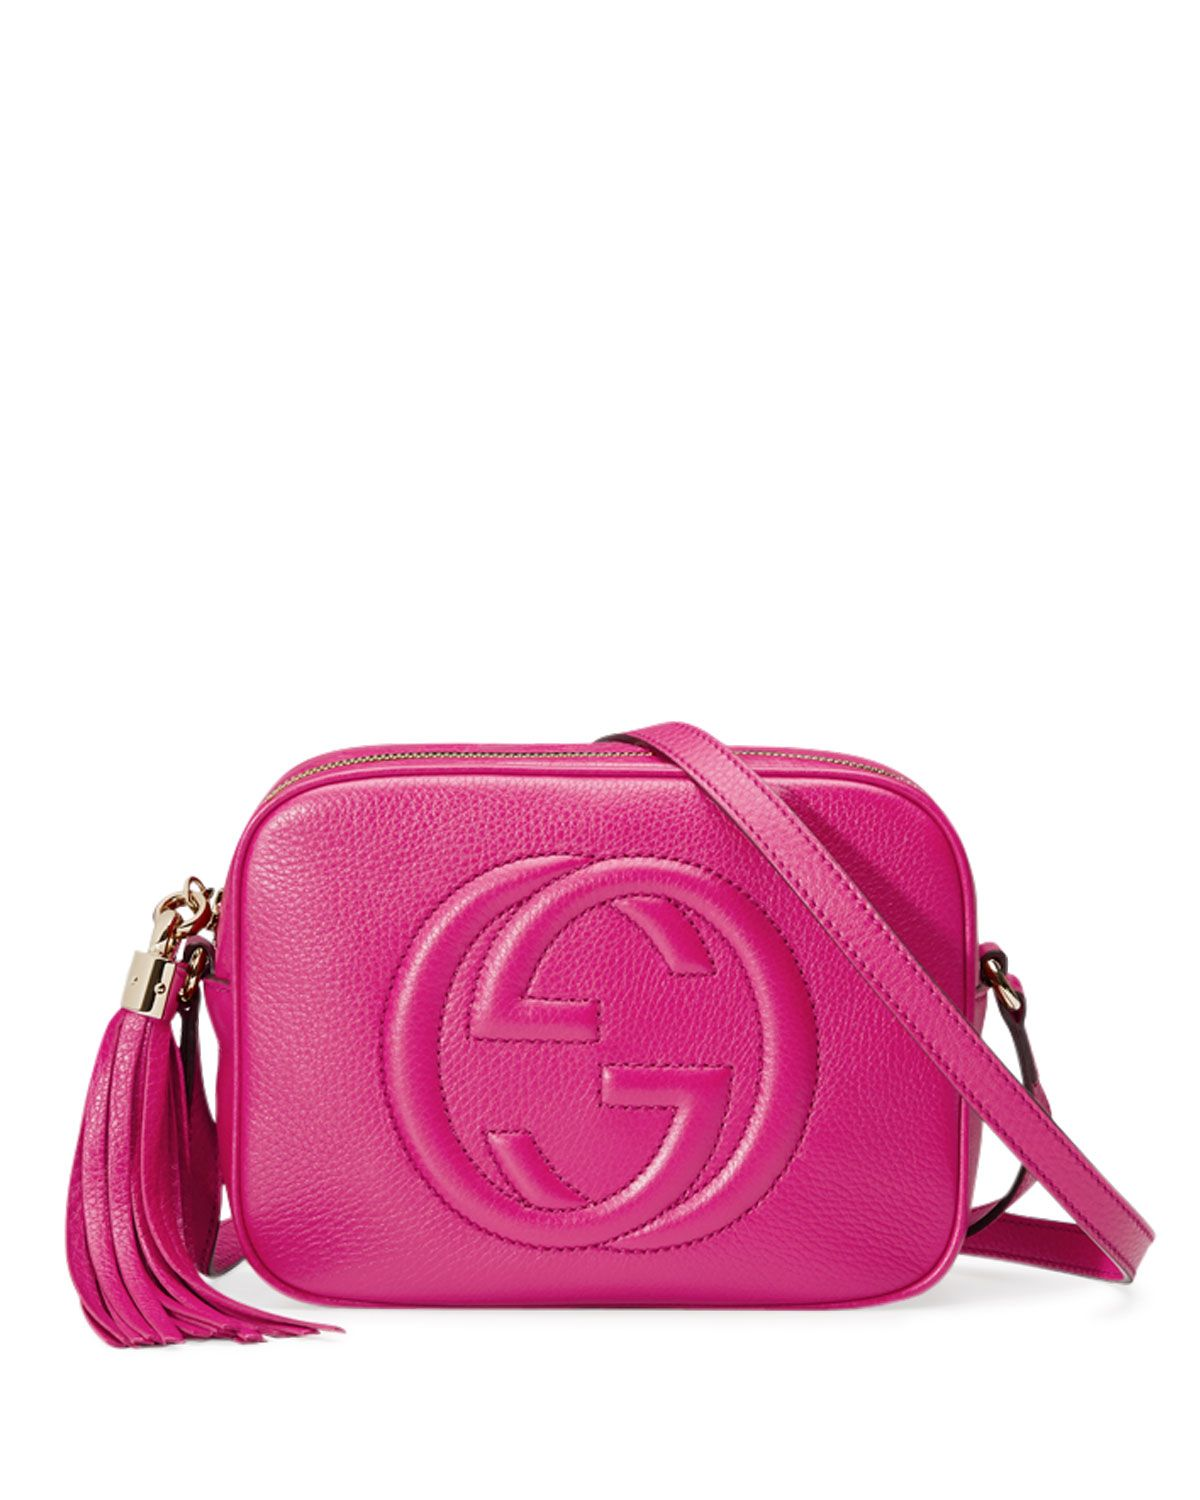 ebbc7d1dd709be Soho Crossbody Camera Bag Bright Pink | *Handbags, Wallets & Cases ...